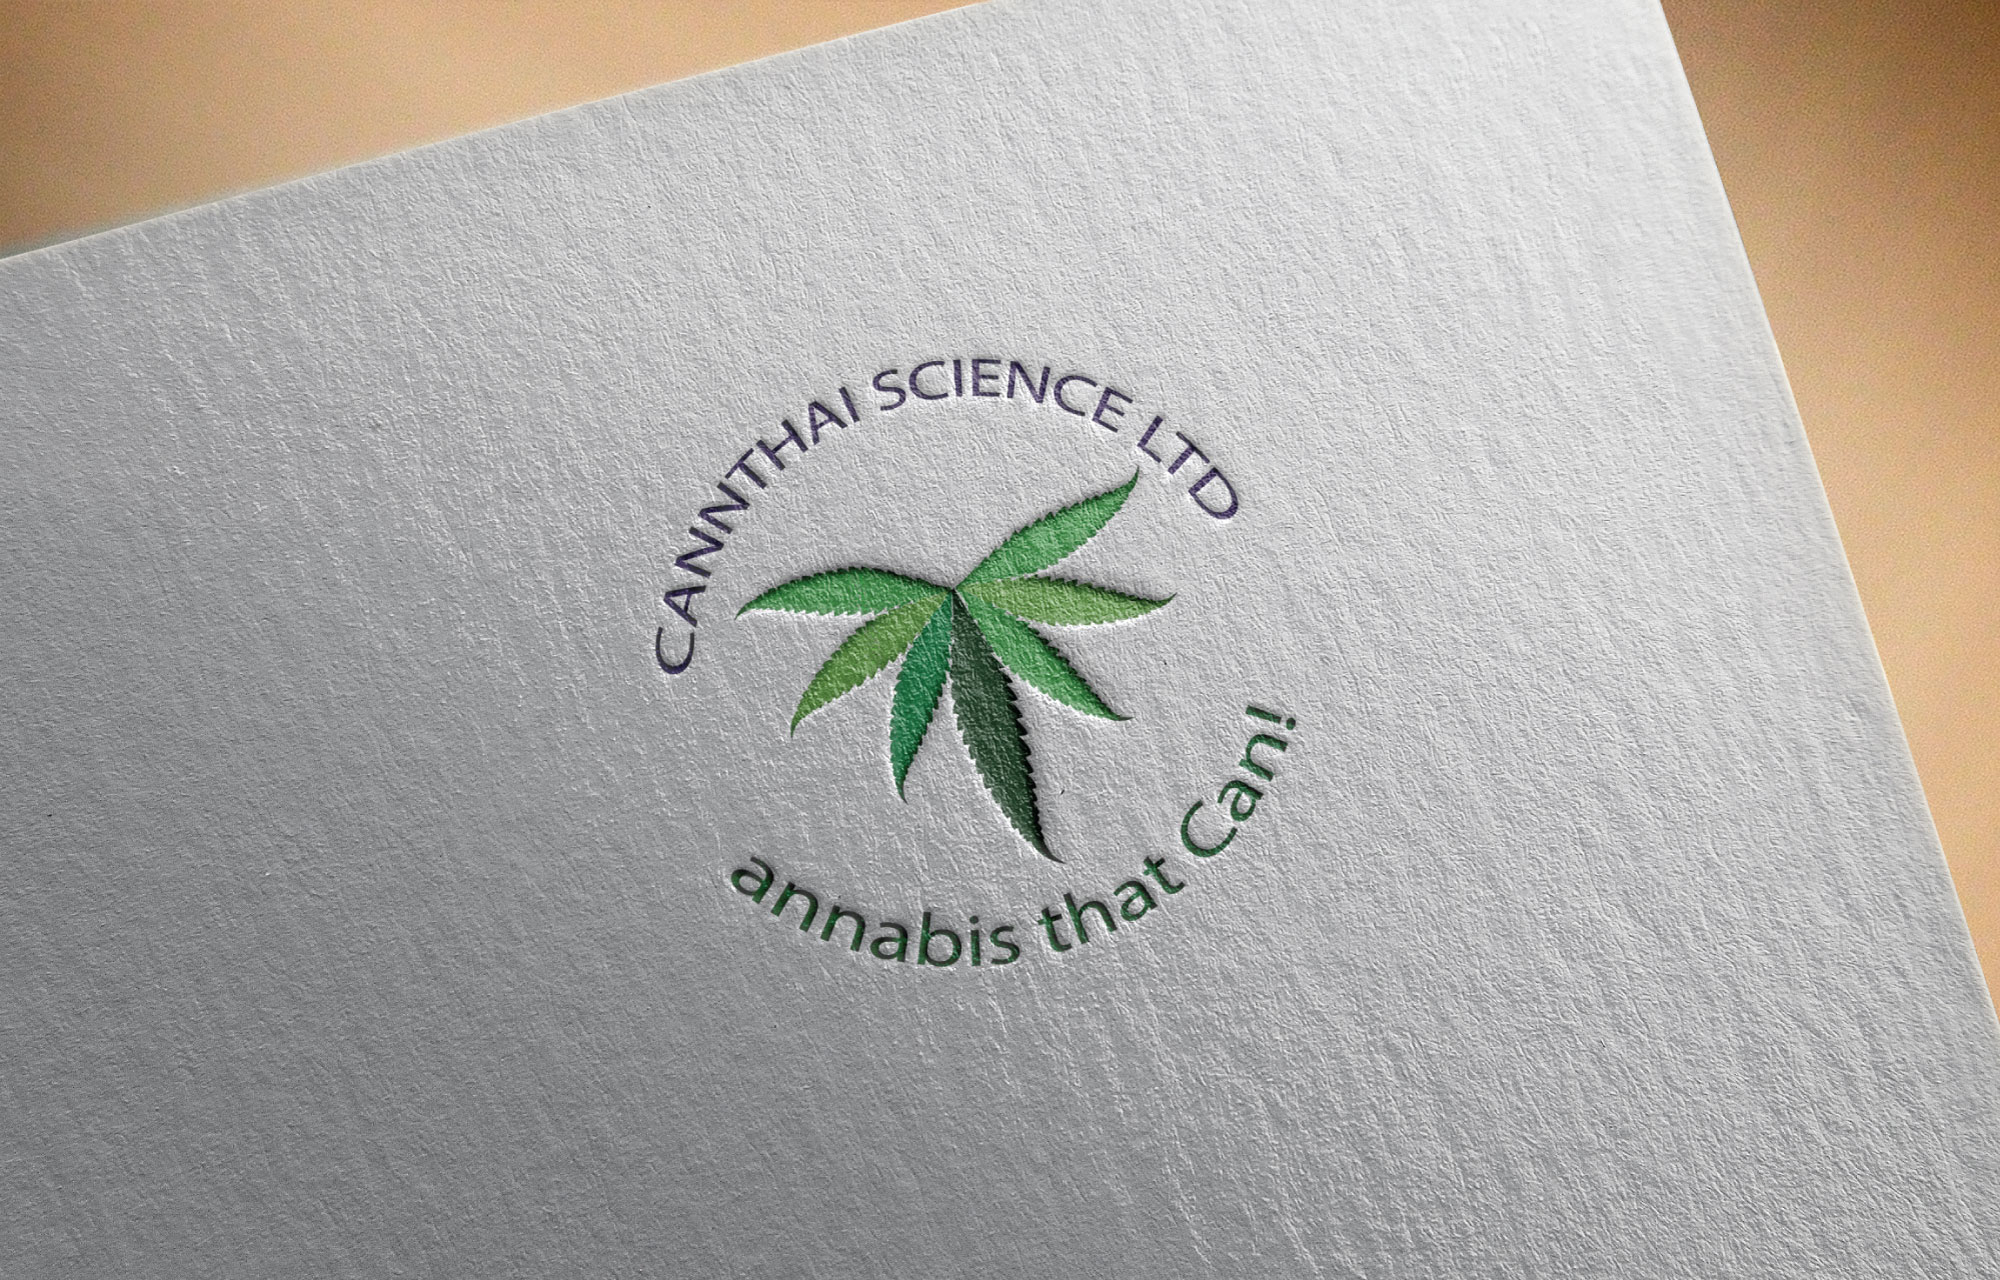 Cannthai Science